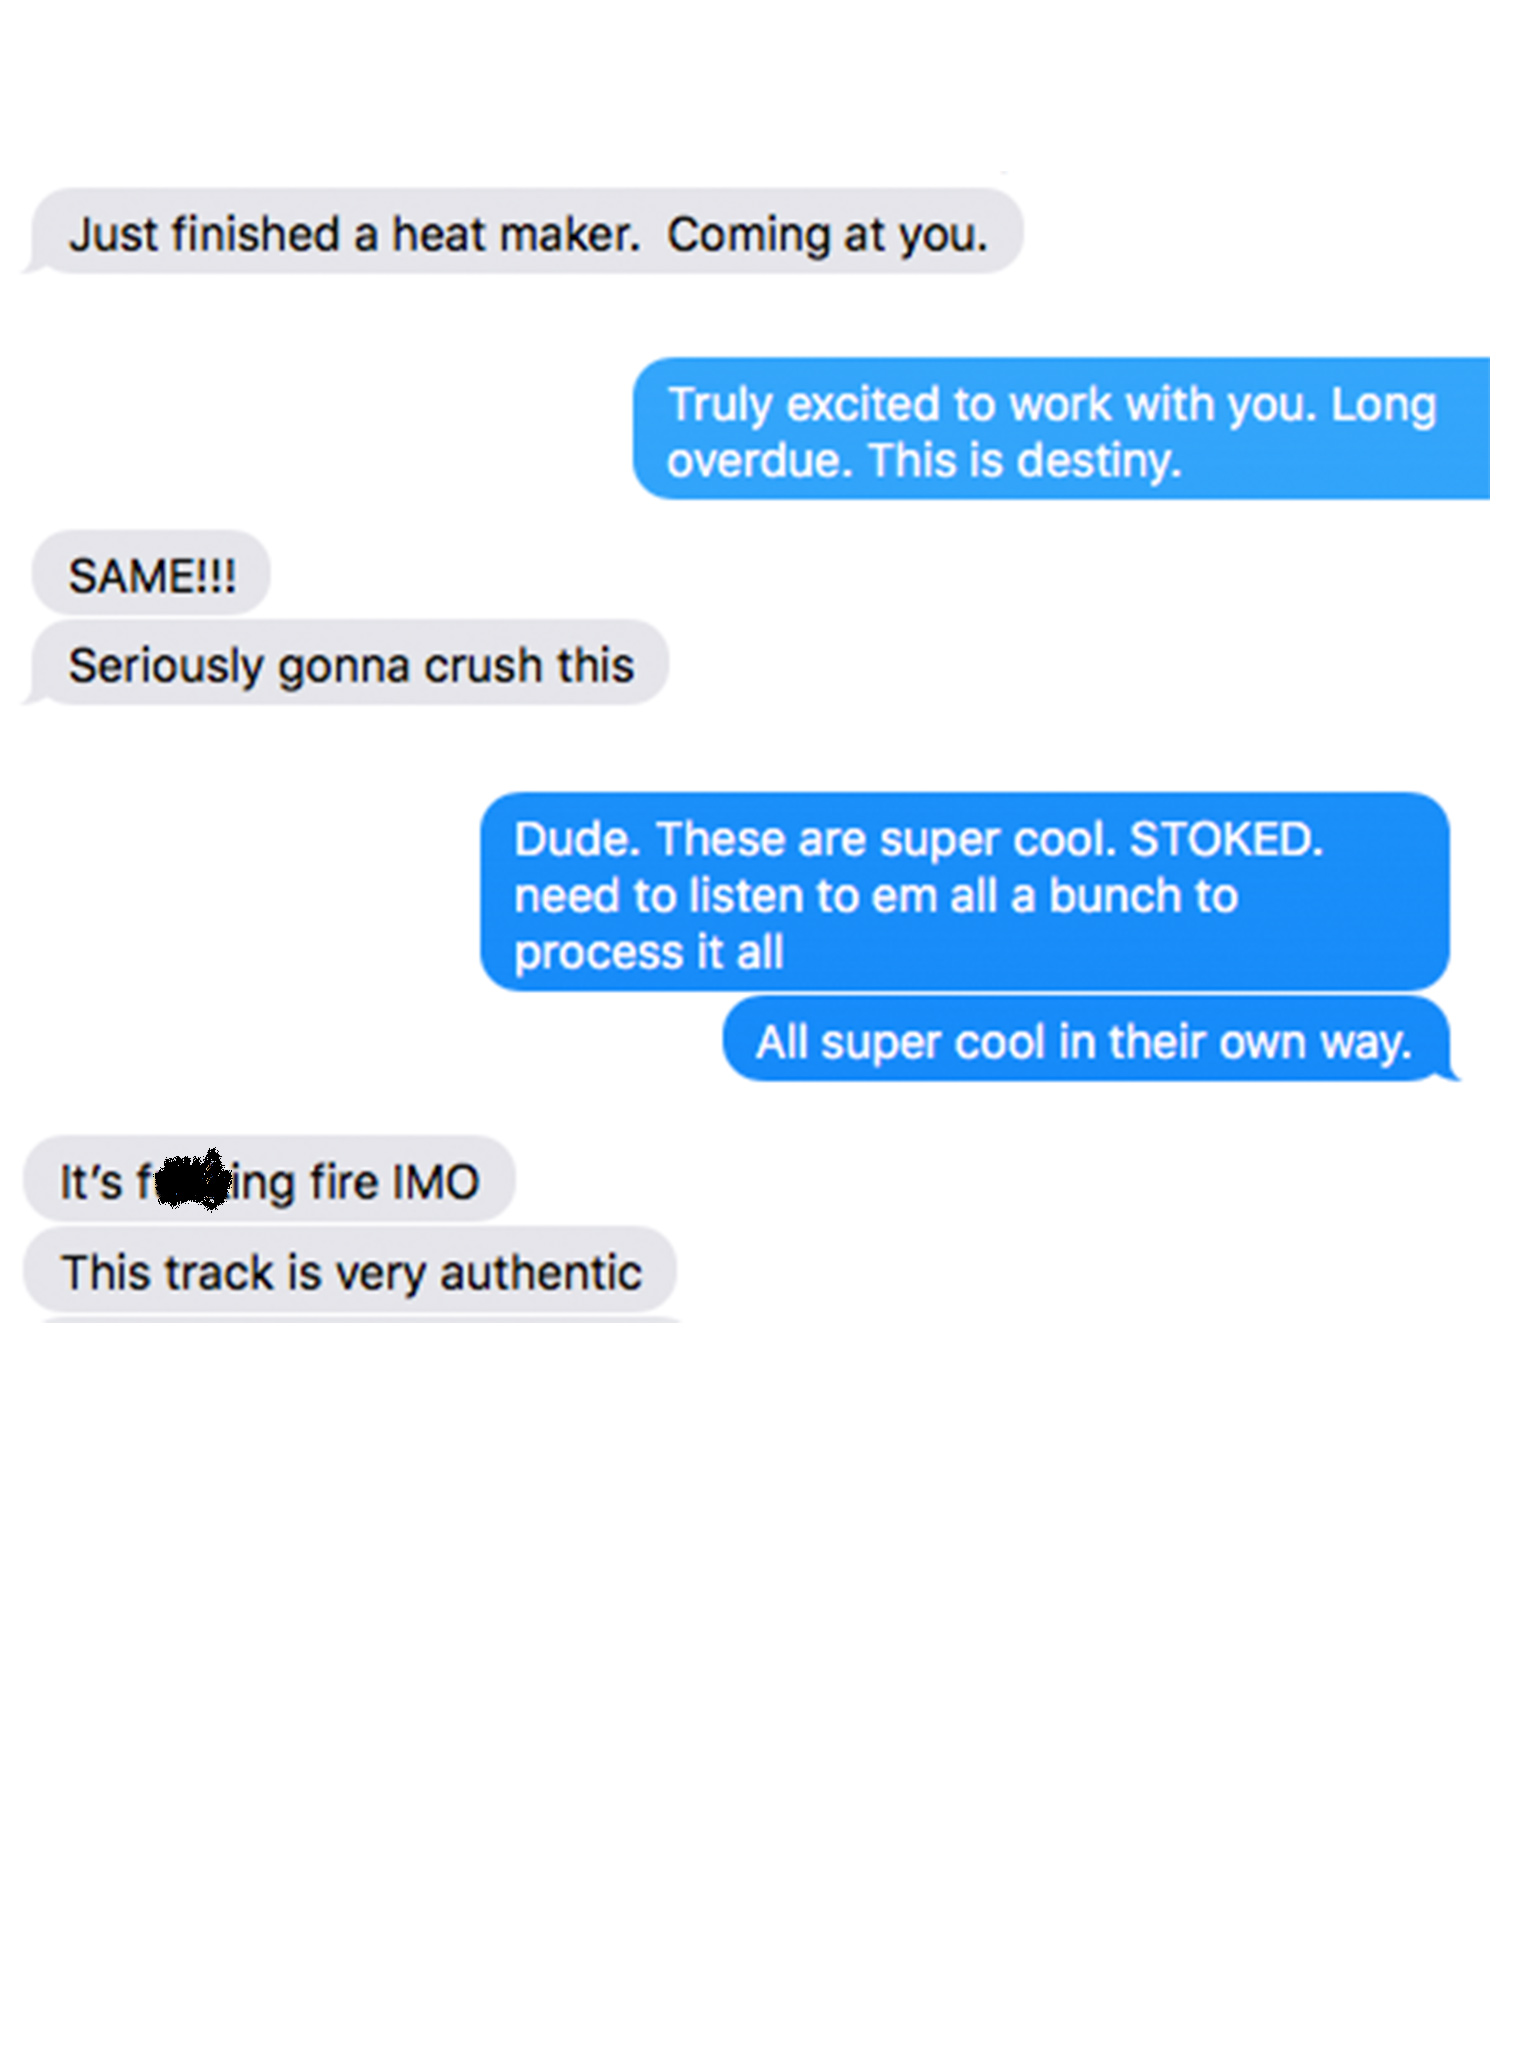 A typical text conversation with Curt.